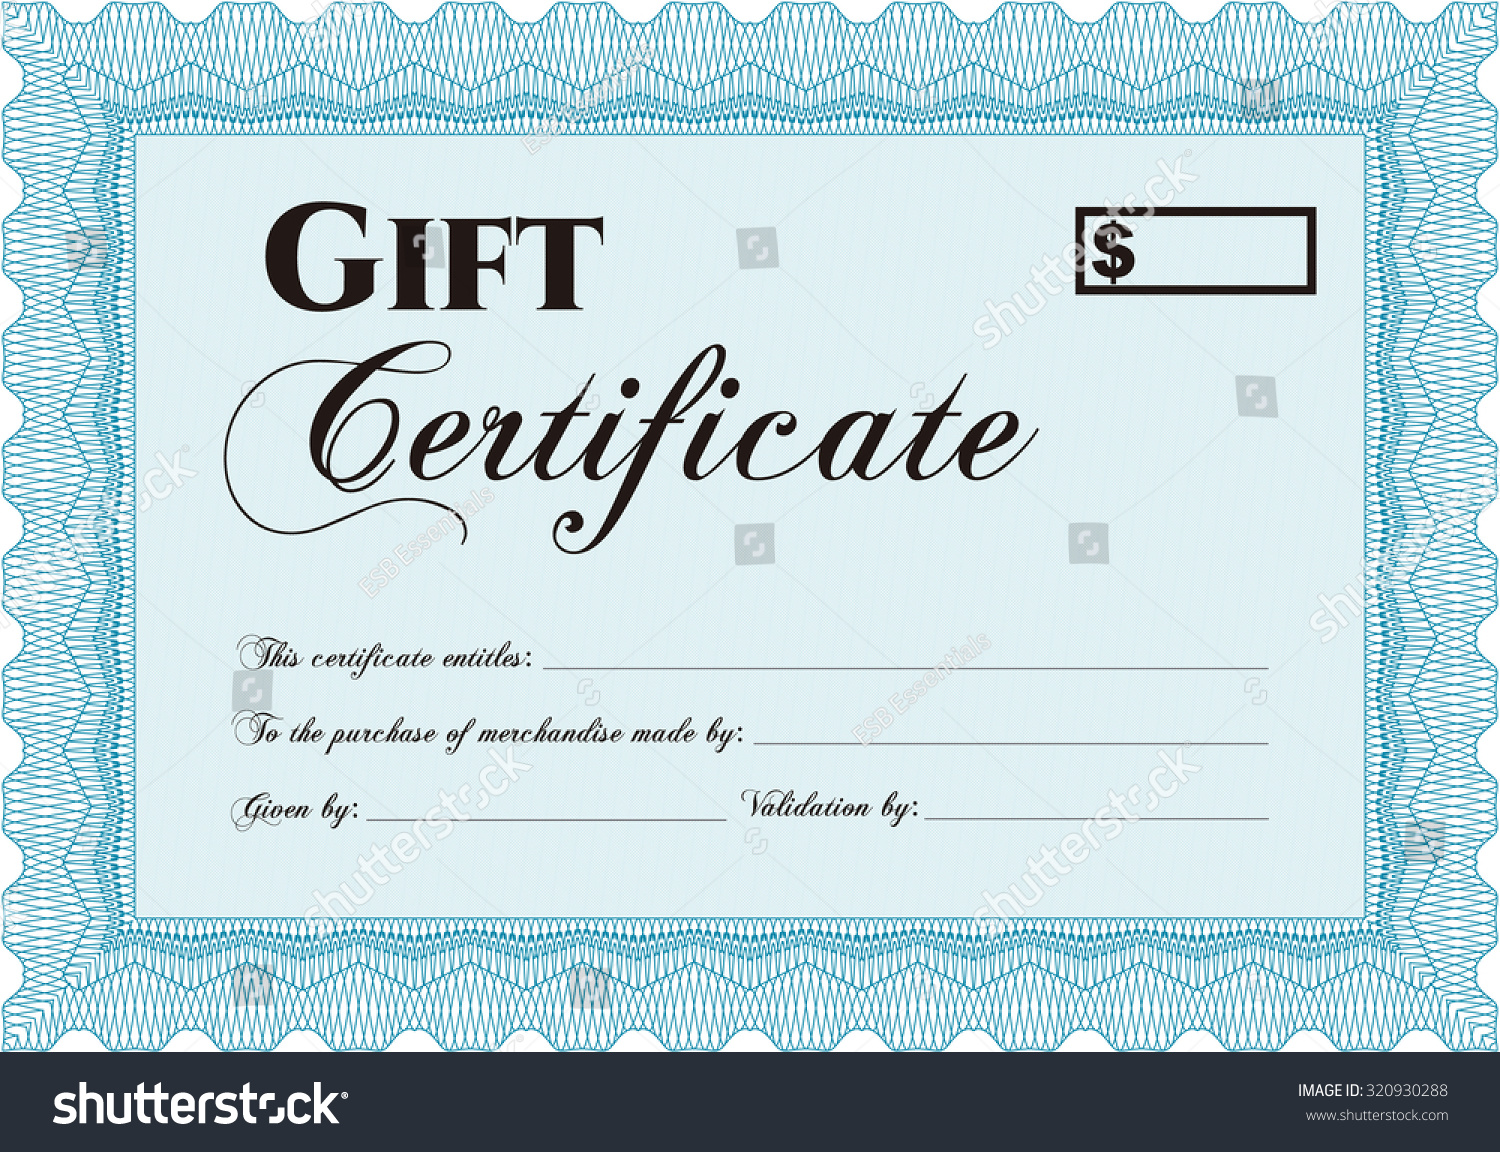 retro gift certificate template elegant design stock vector retro gift certificate template elegant design vector illustration easy to print